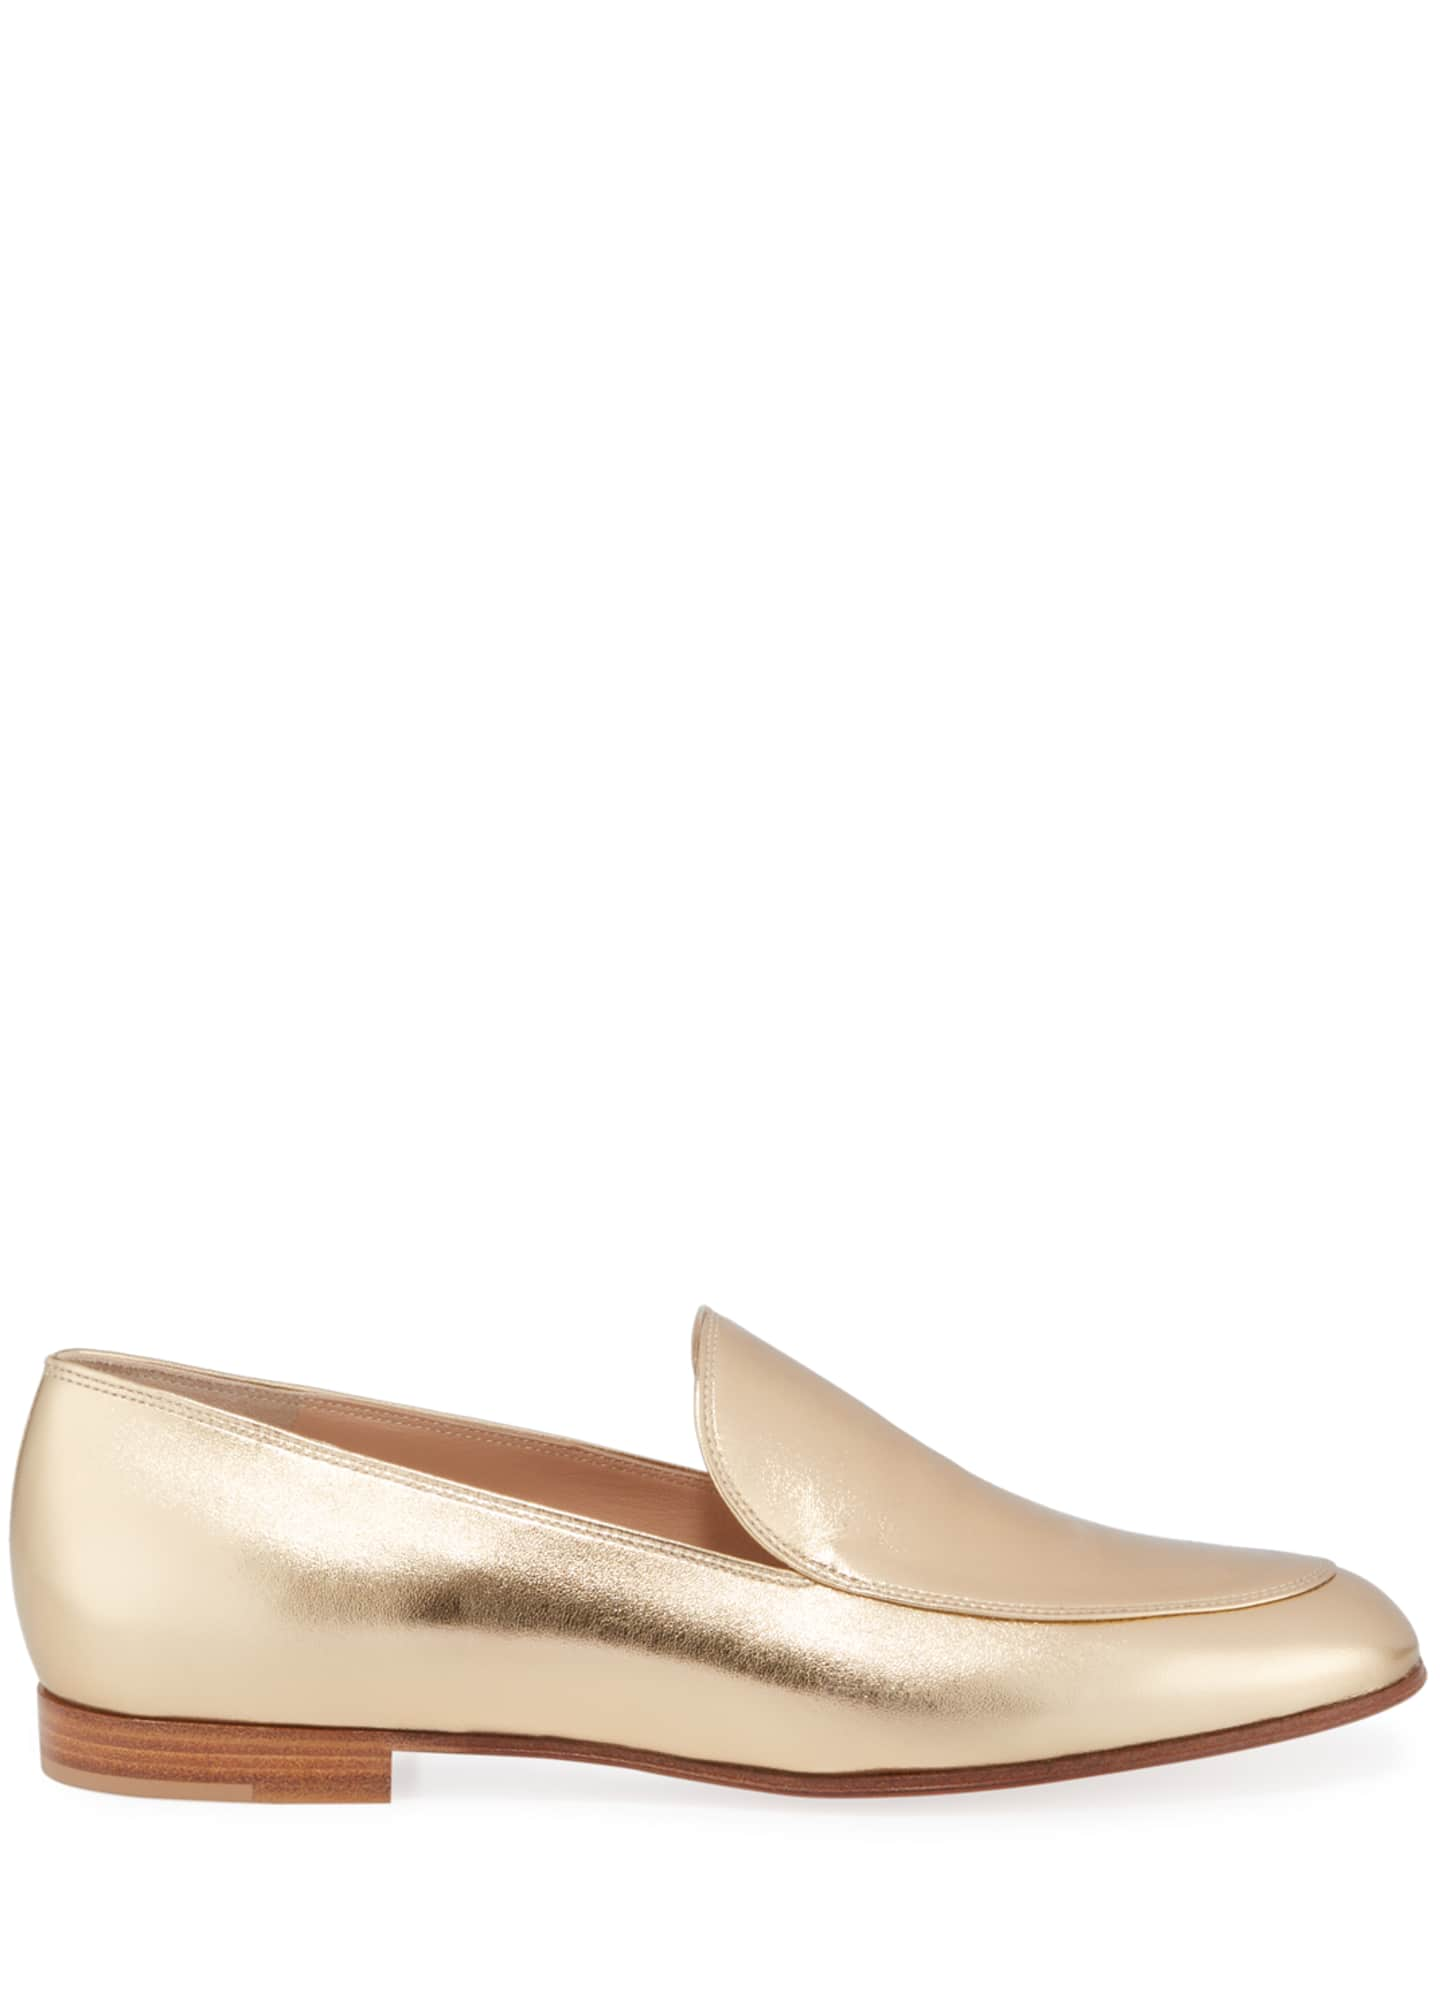 Image 2 of 3: Metallic Leather Flat Loafers